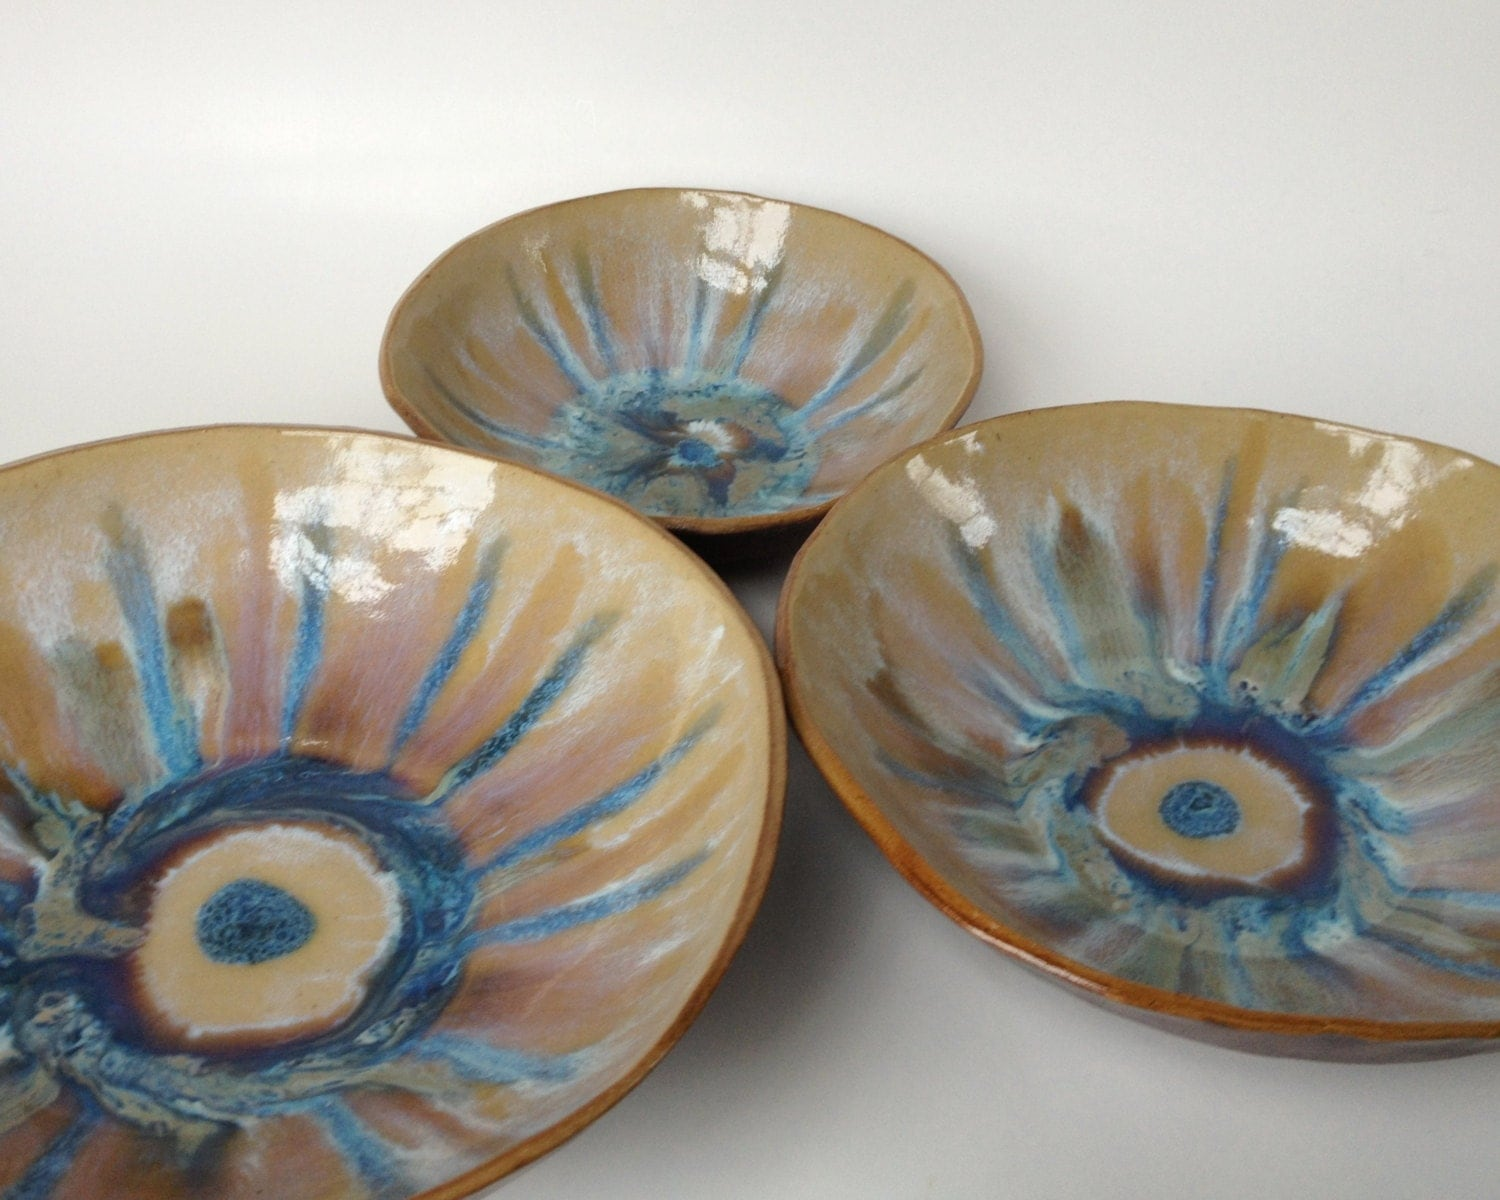 Decorative Ceramic Bowls Pottery Nesting Bowls Set of 3